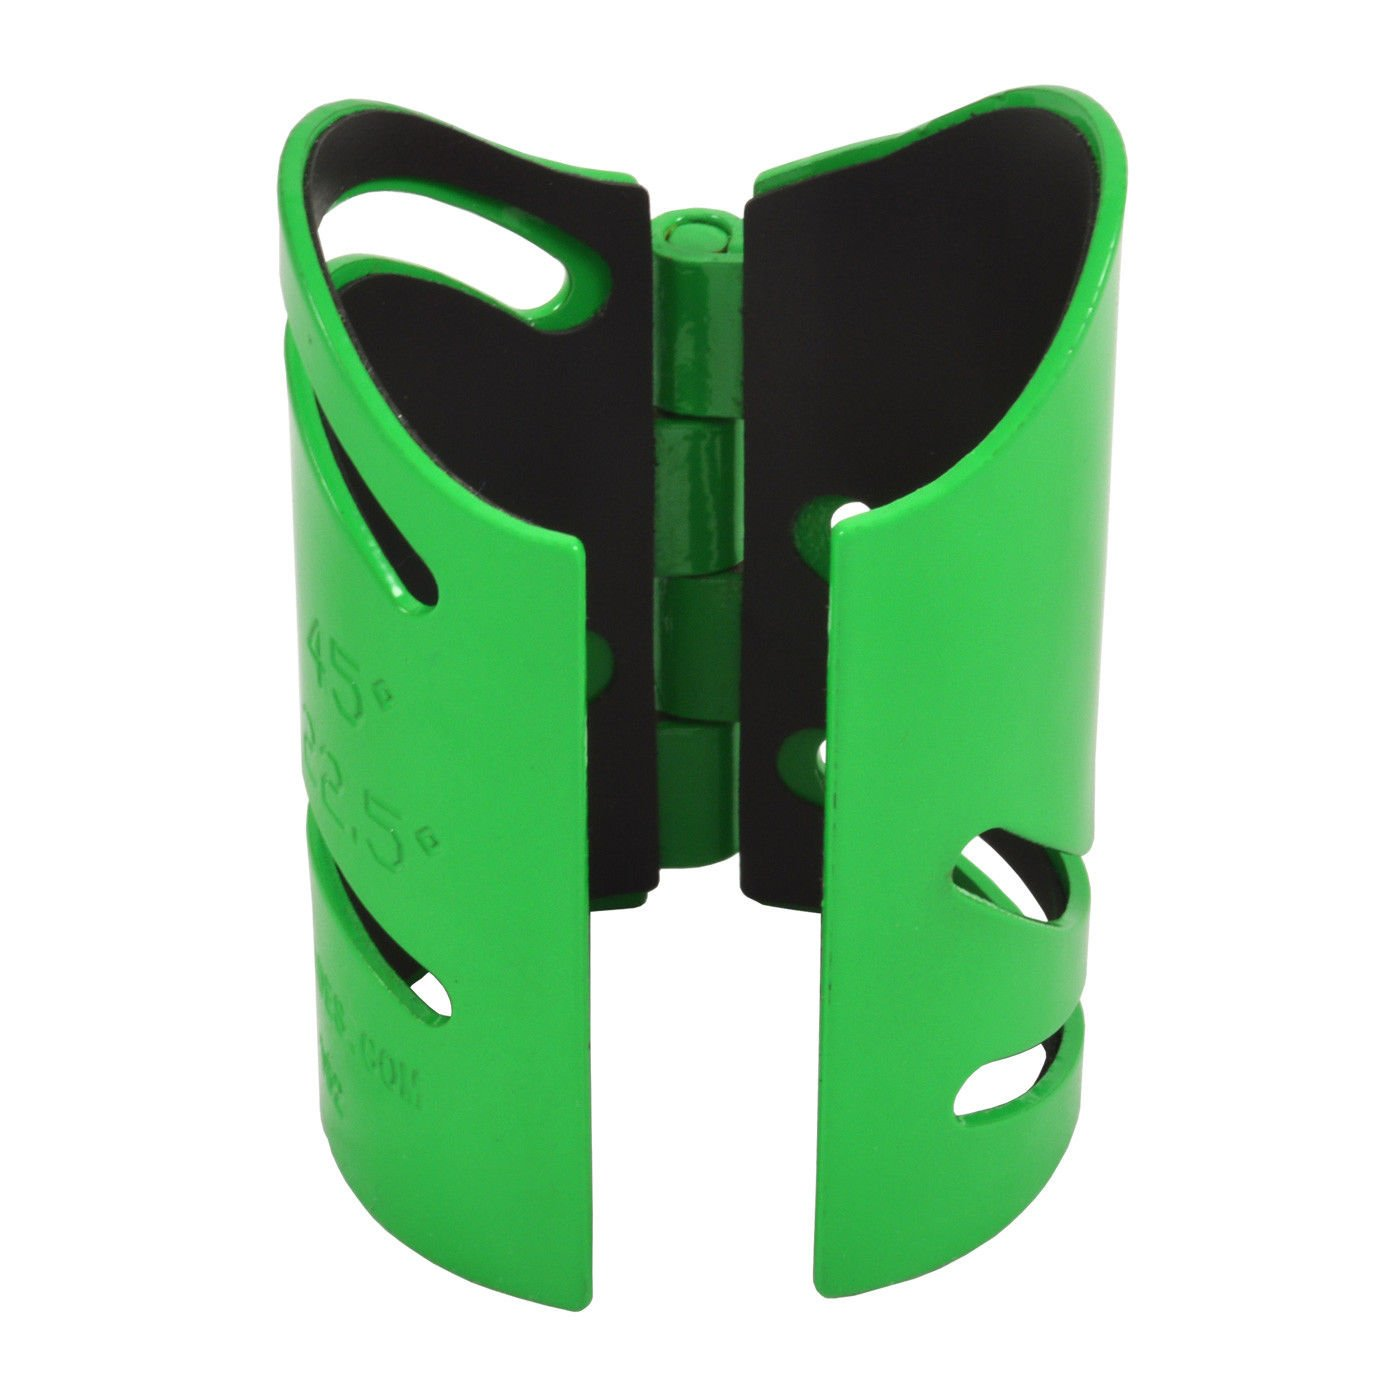 Pipe Pro 158M 1 5 8 Magnetic Metal Cutting Guide Green